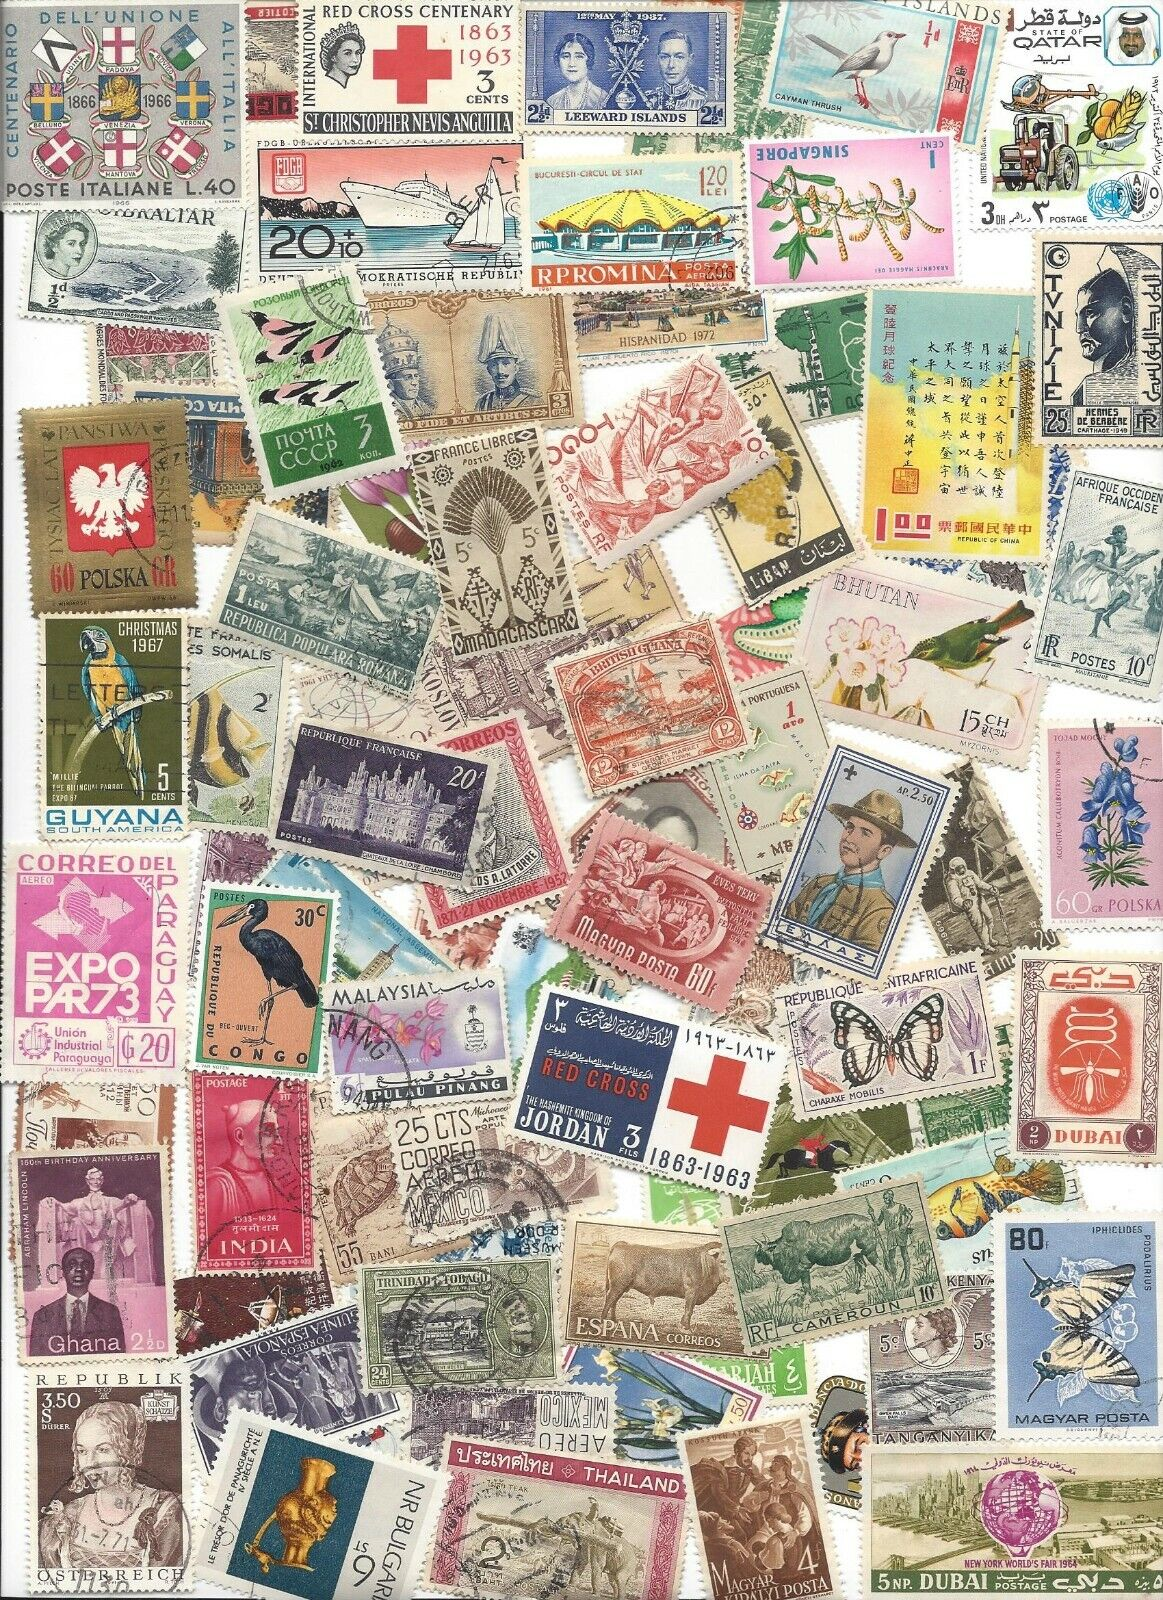 75 Different Cancelled Worldwide Stamps 2/14 - $1.65